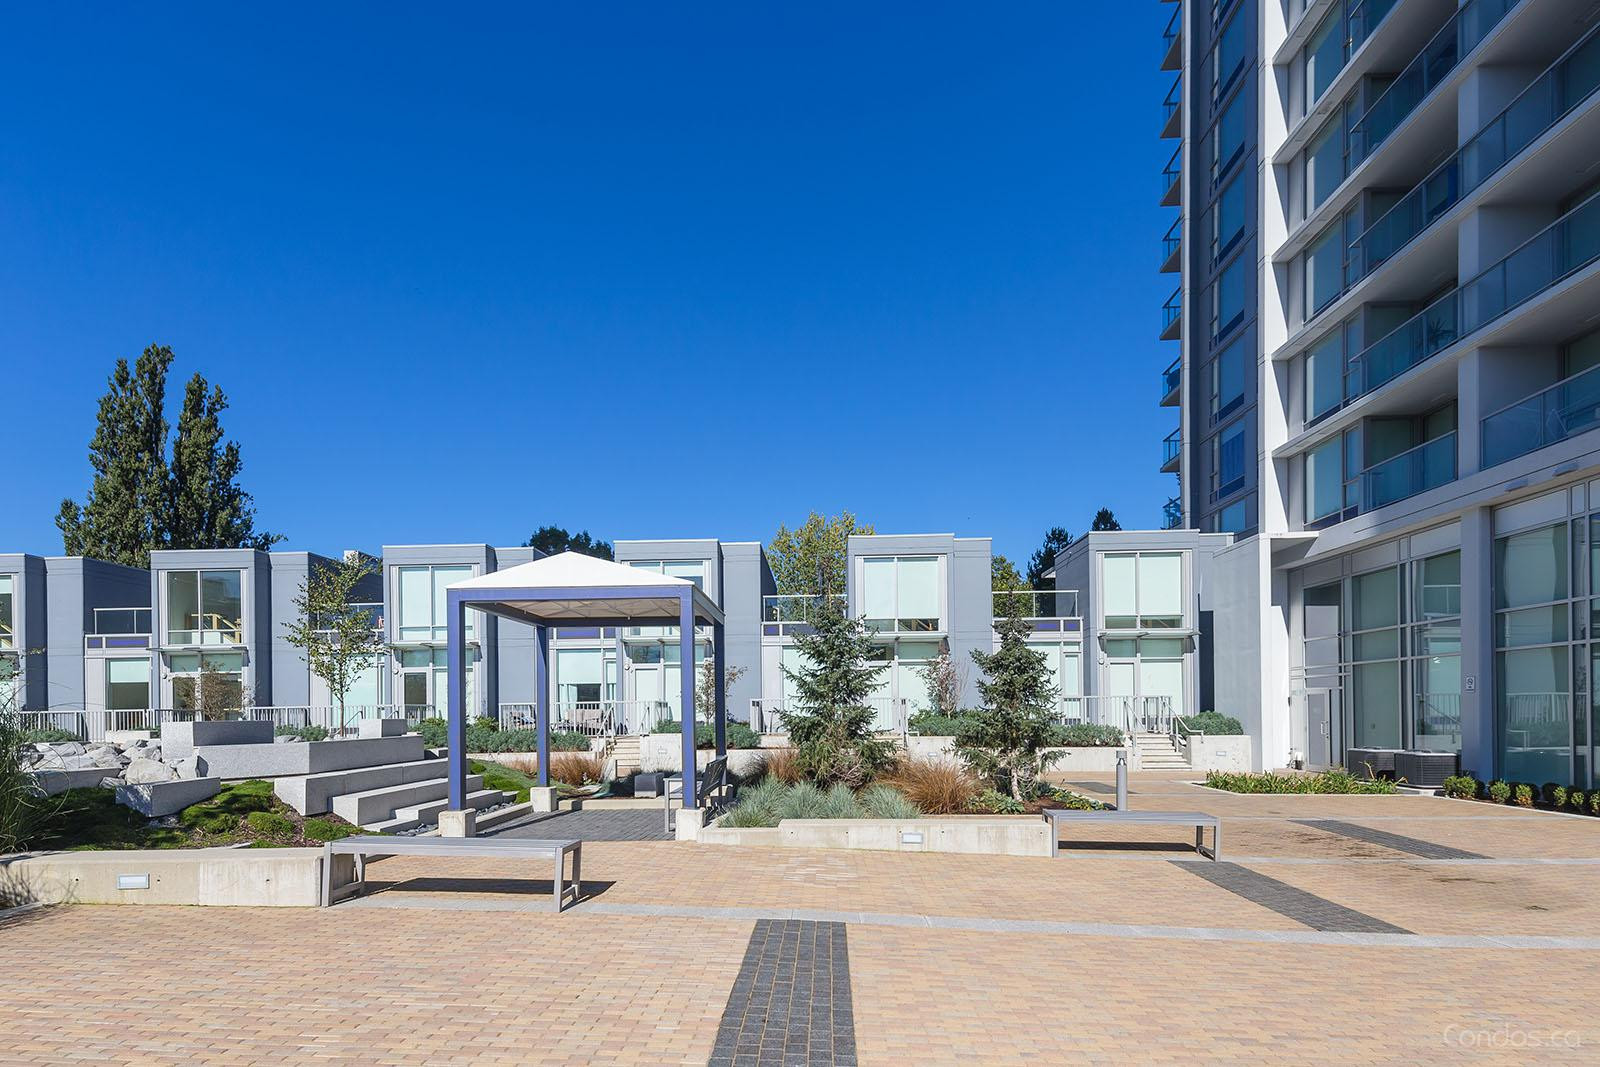 Park Avenue West at 13750 100 Ave, Surrey 1